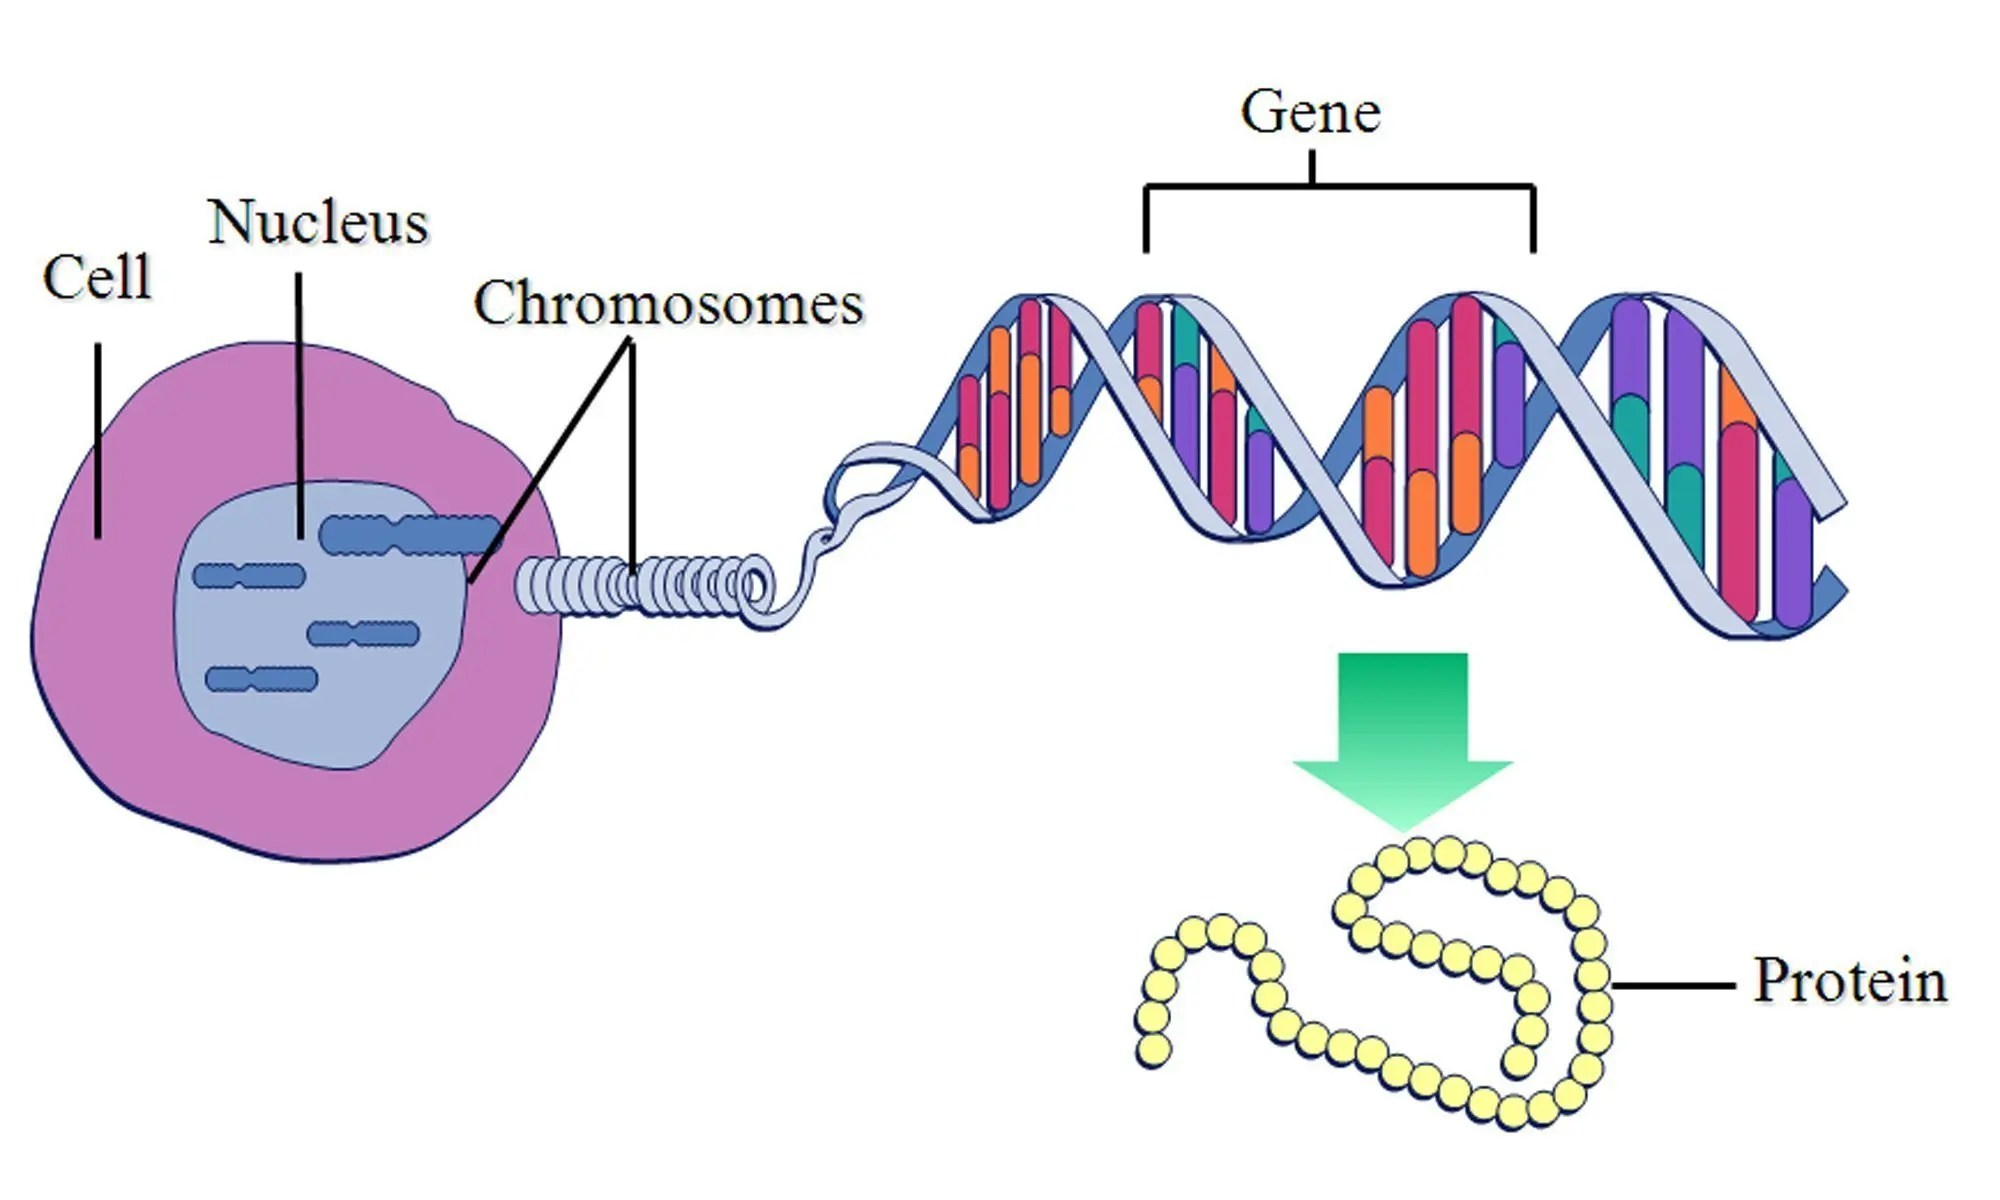 image of gene-chromosome